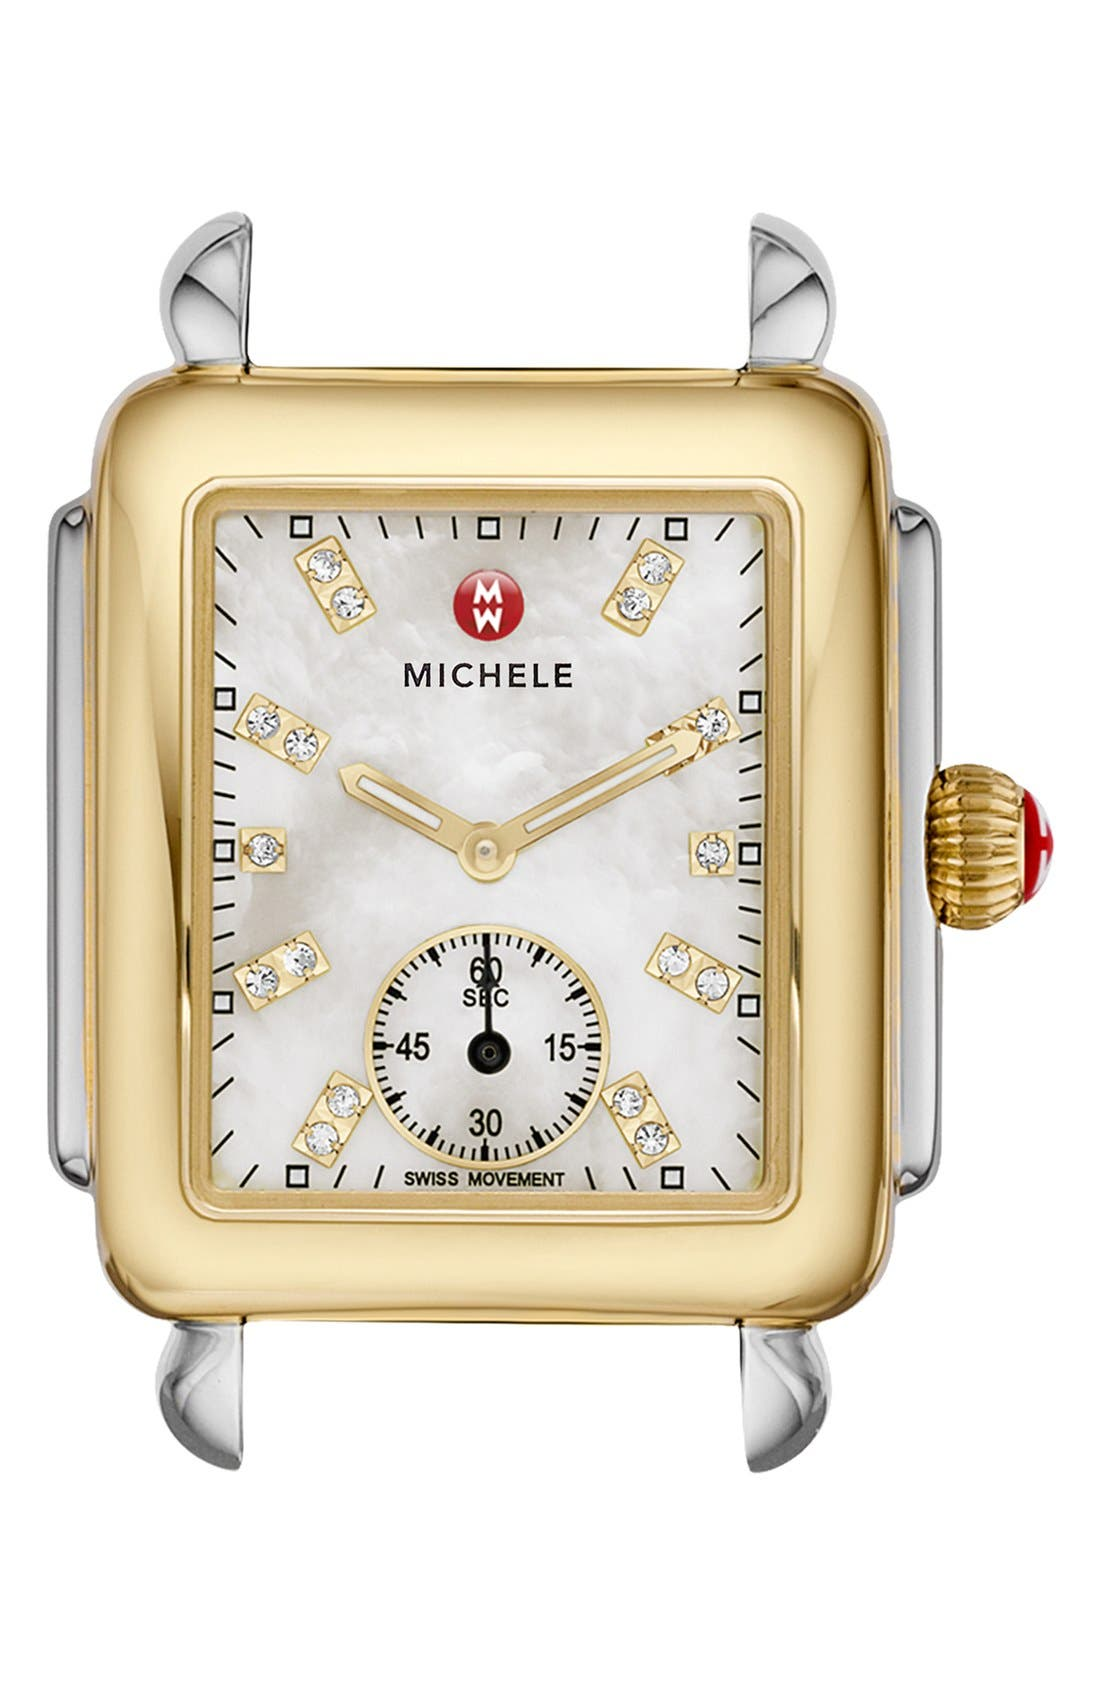 Alternate Image 1 Selected - MICHELE Deco 16 Diamond Dial Two-Tone Watch Case, 29mm x 31mm